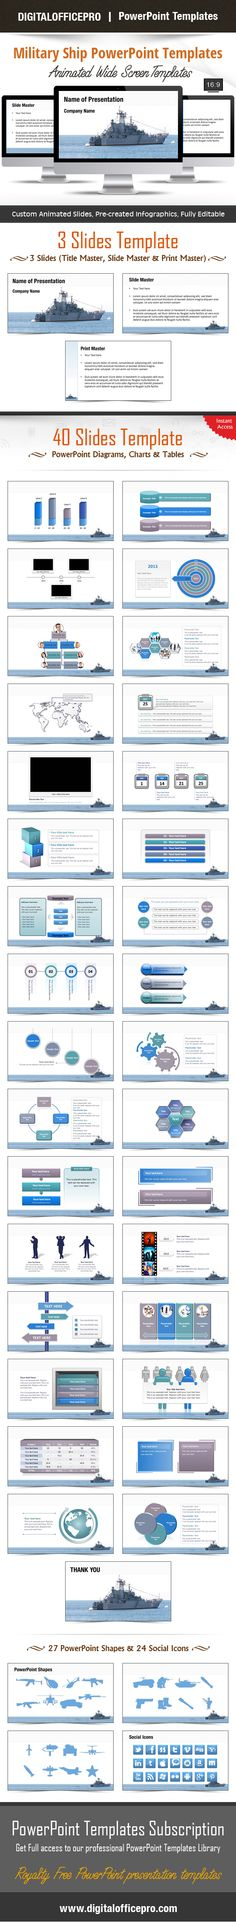 Impress and Engage your audience with Military Ship PowerPoint Template and Military Ship PowerPoint Backgrounds from DigitalOfficePro. Each template comes with a set of PowerPoint Diagrams, Charts & Shapes and are available for instant download.